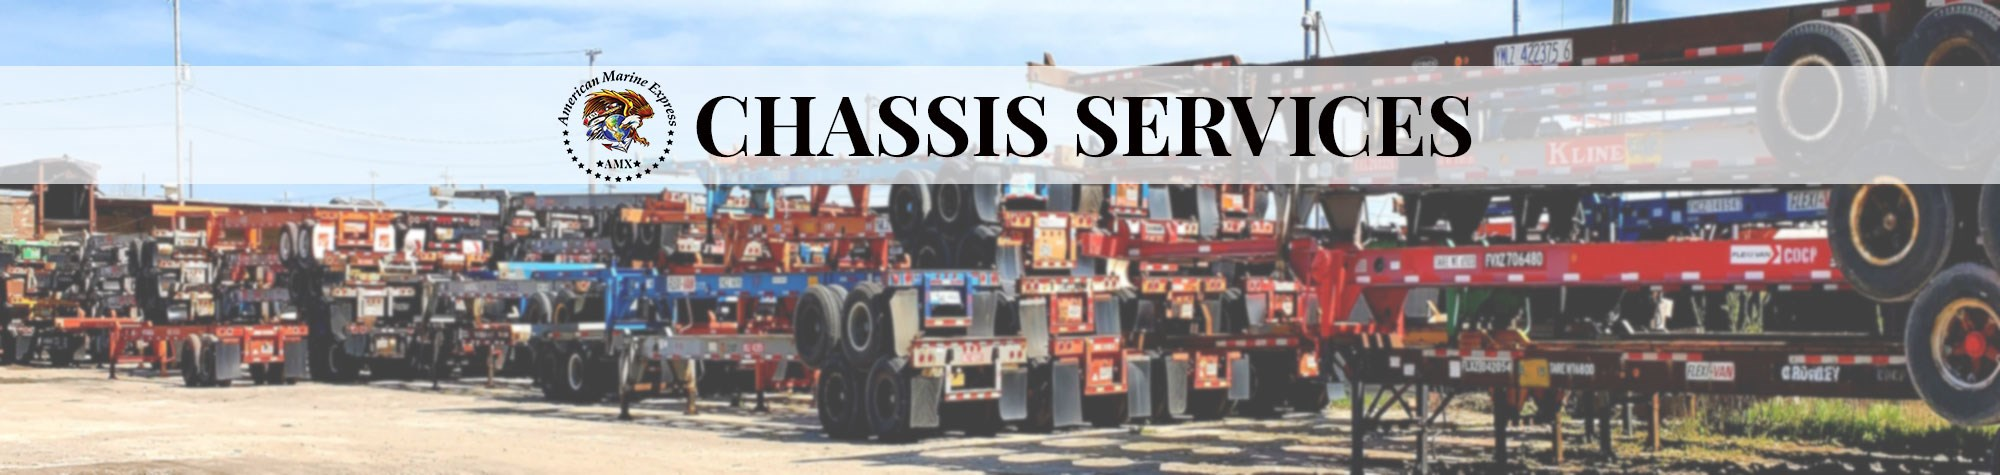 Chassis_Services_Banner